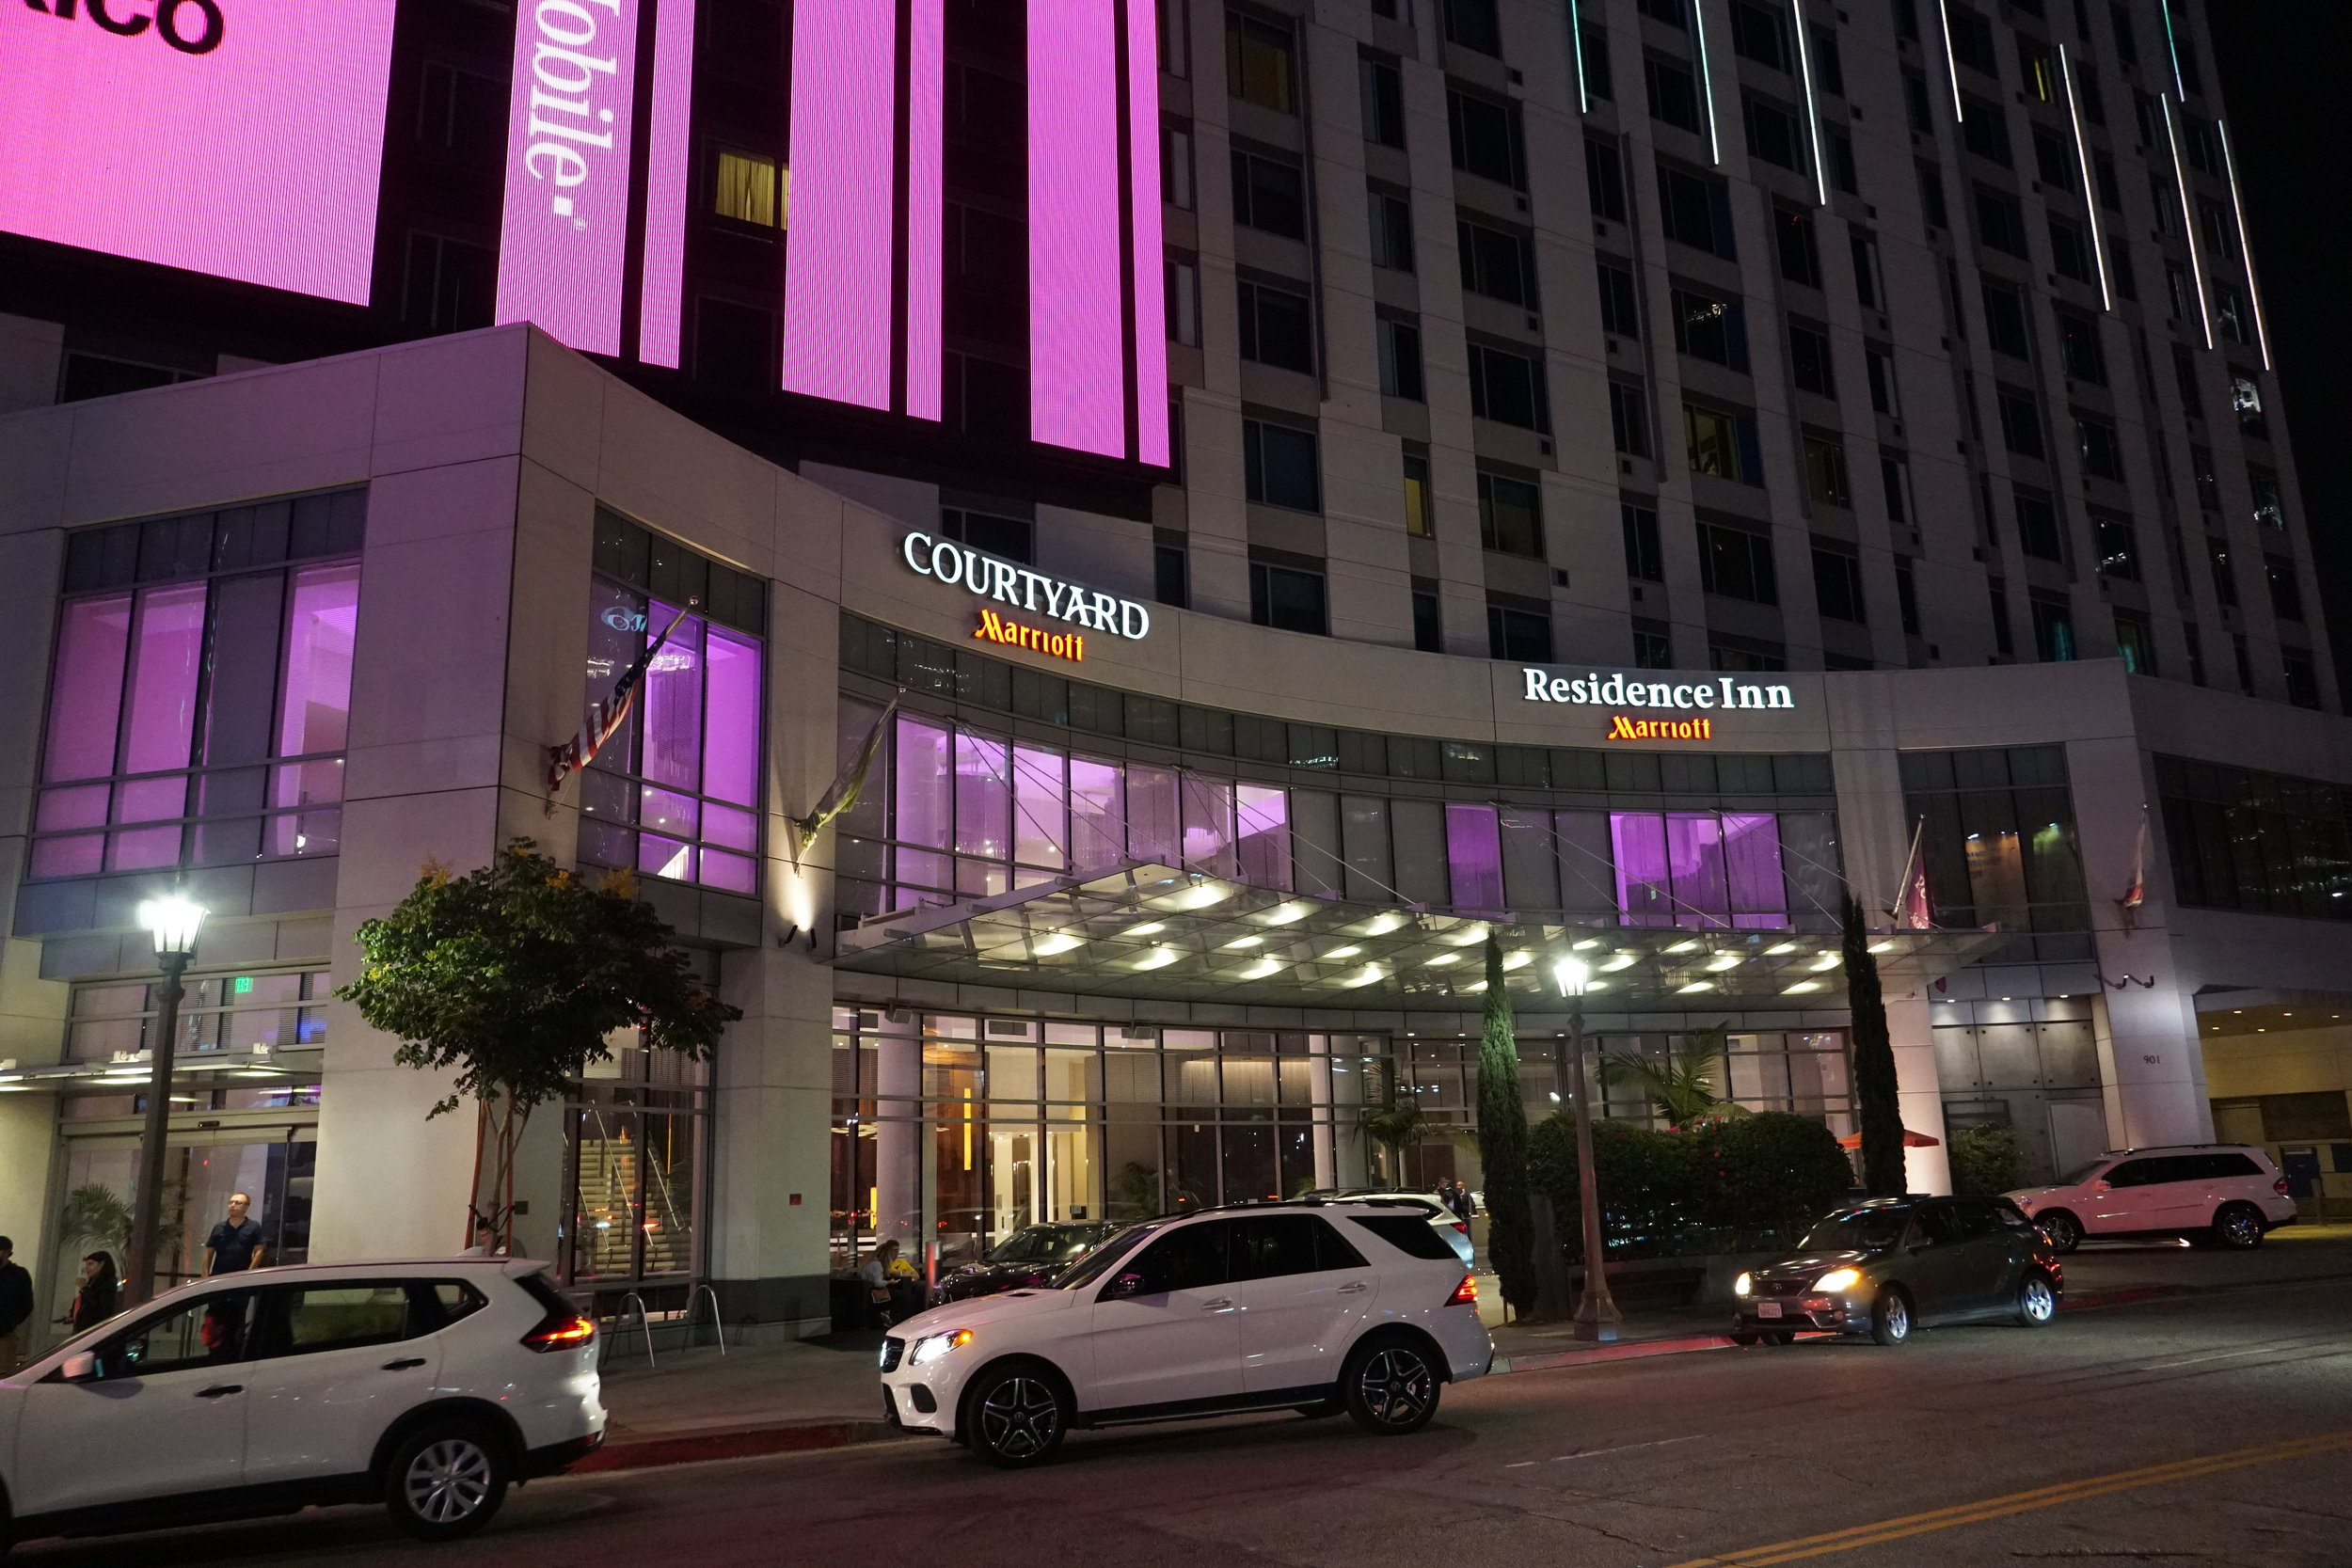 courtyard marriott and residence inn building